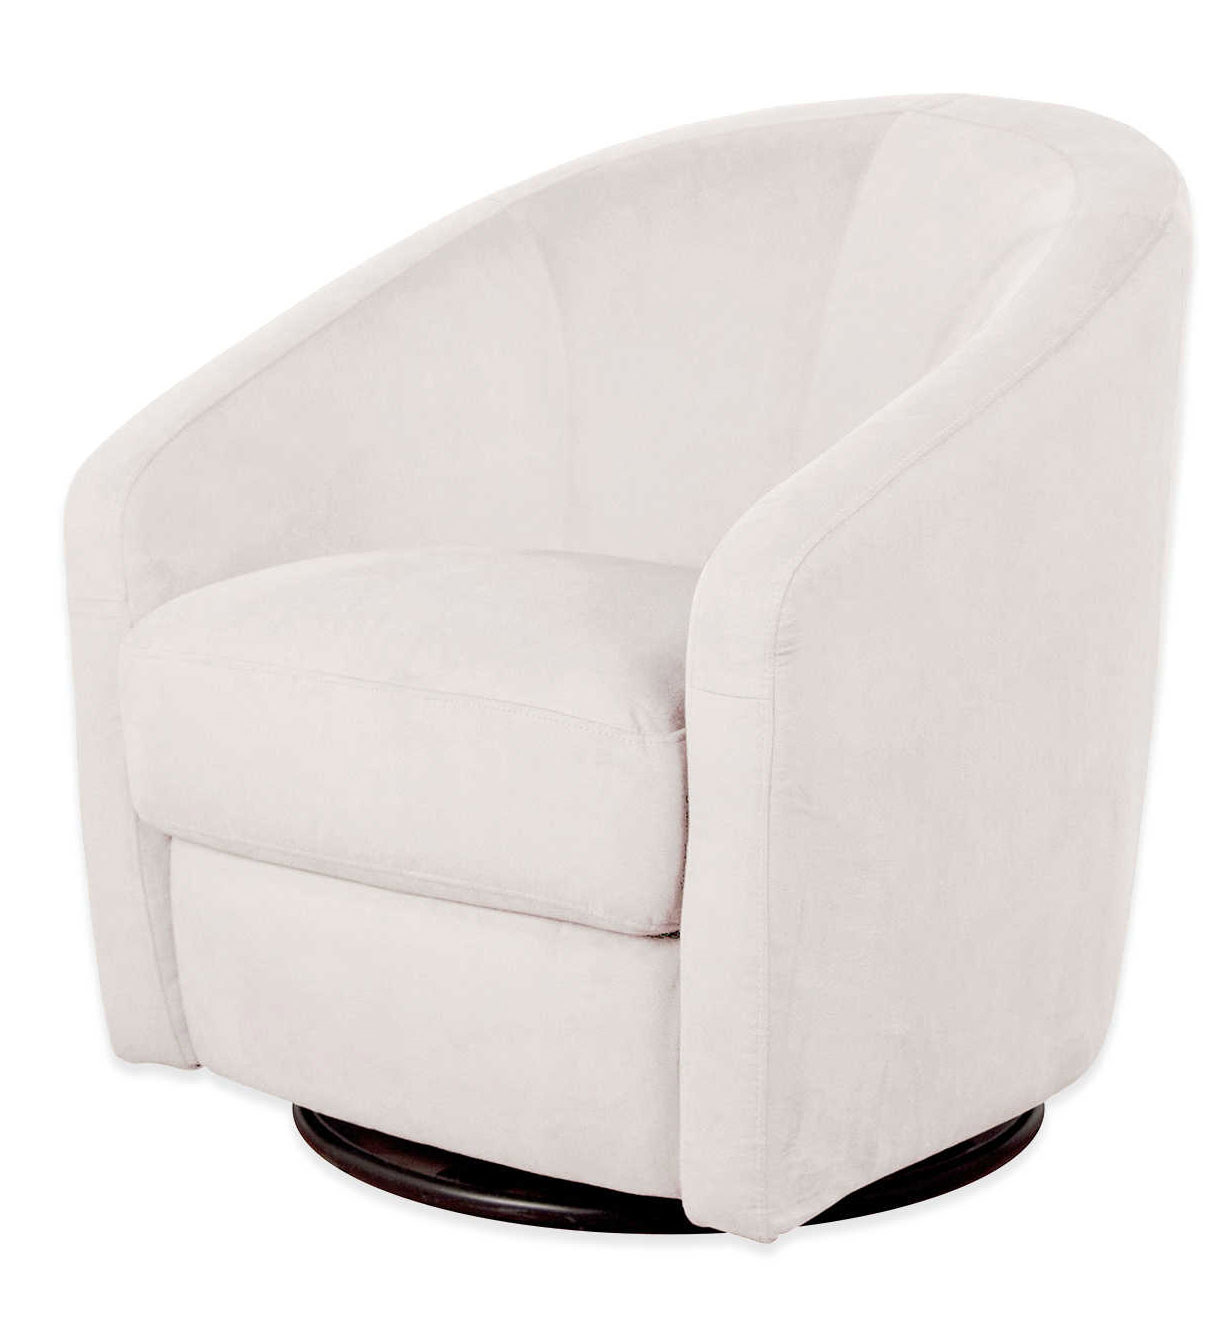 tall swivel chair uk target armless the 5 best glider nursery chairs: mom's choice